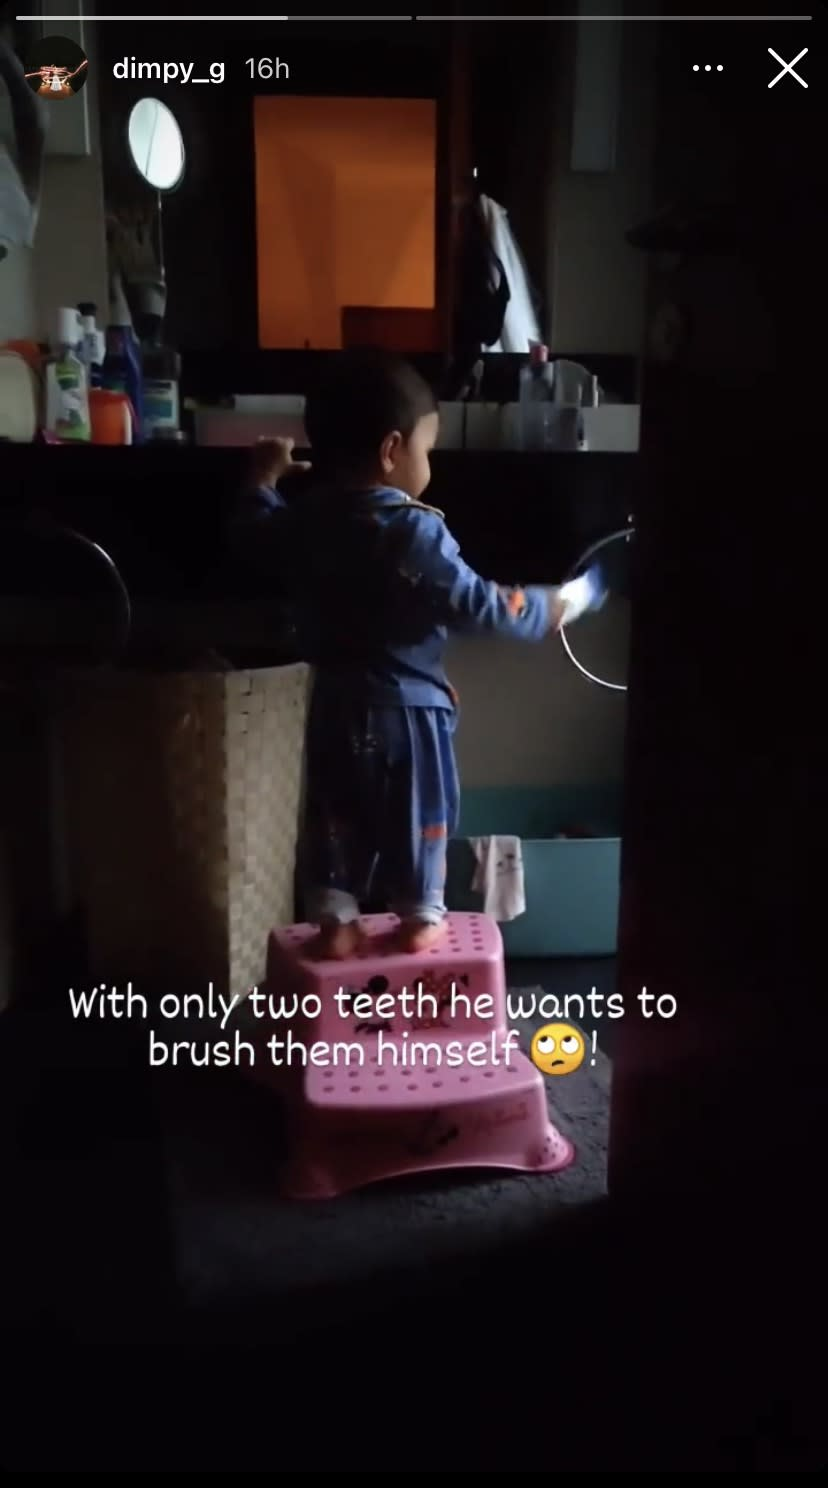 Dimpy Ganguly's Son Try To Brush His Two Teeth